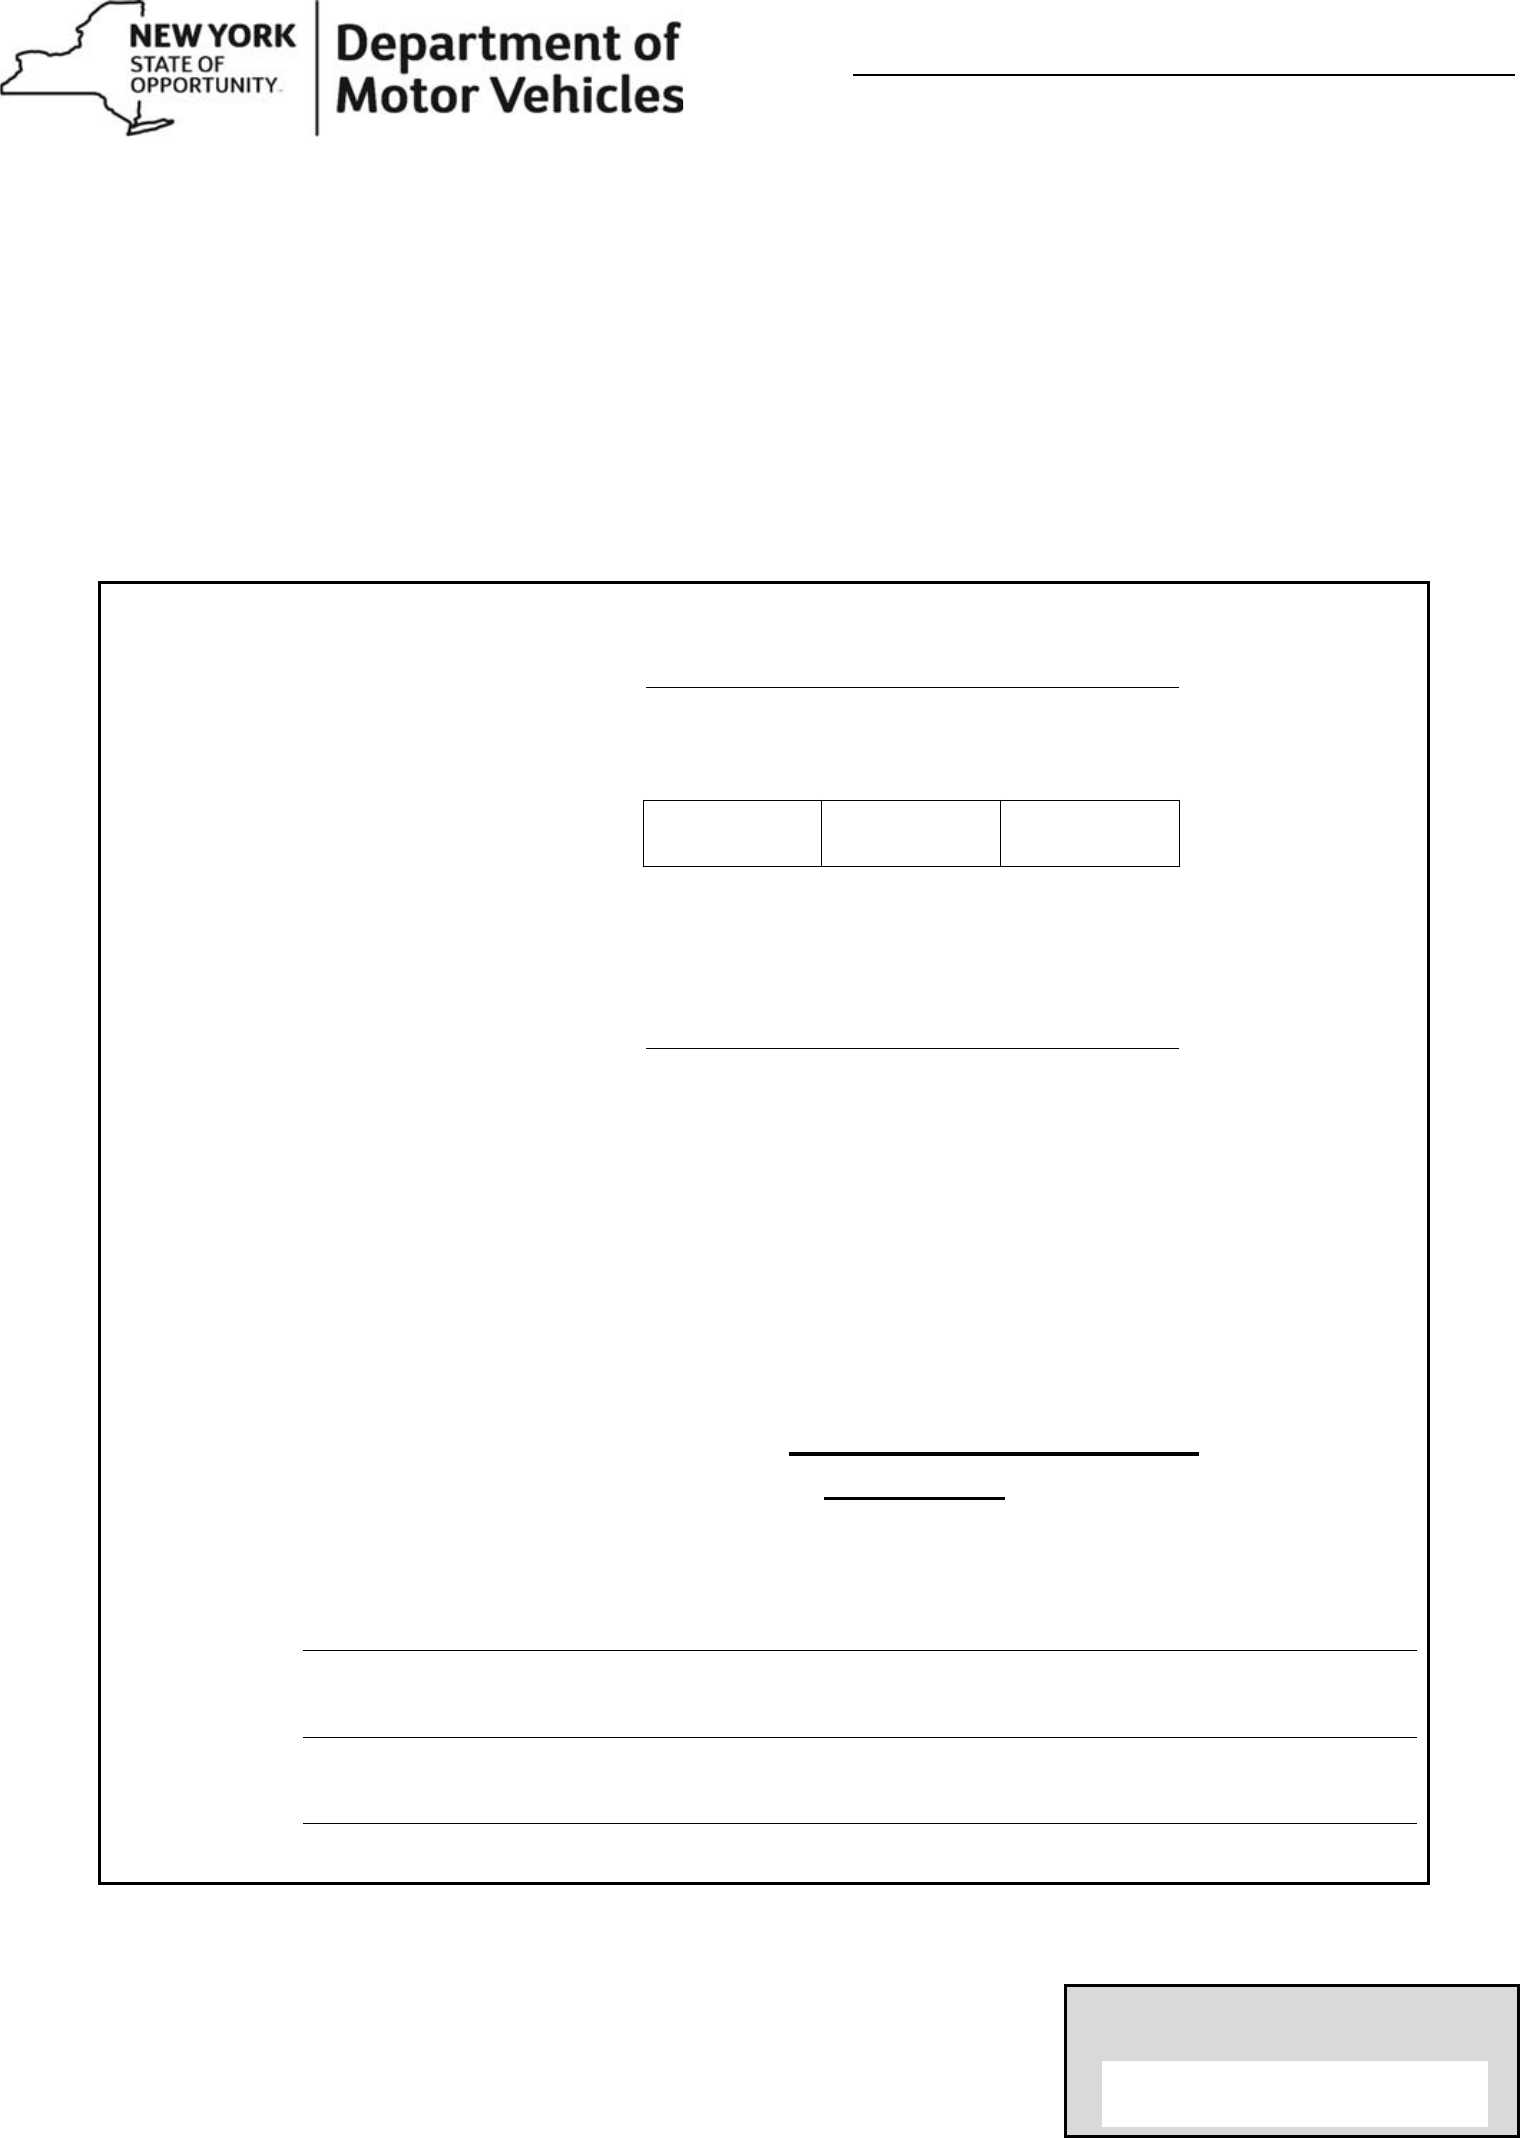 Returning Plates To Dmv Ny >> Form Pd 7 Plate Surrender Application Form New York Free Download